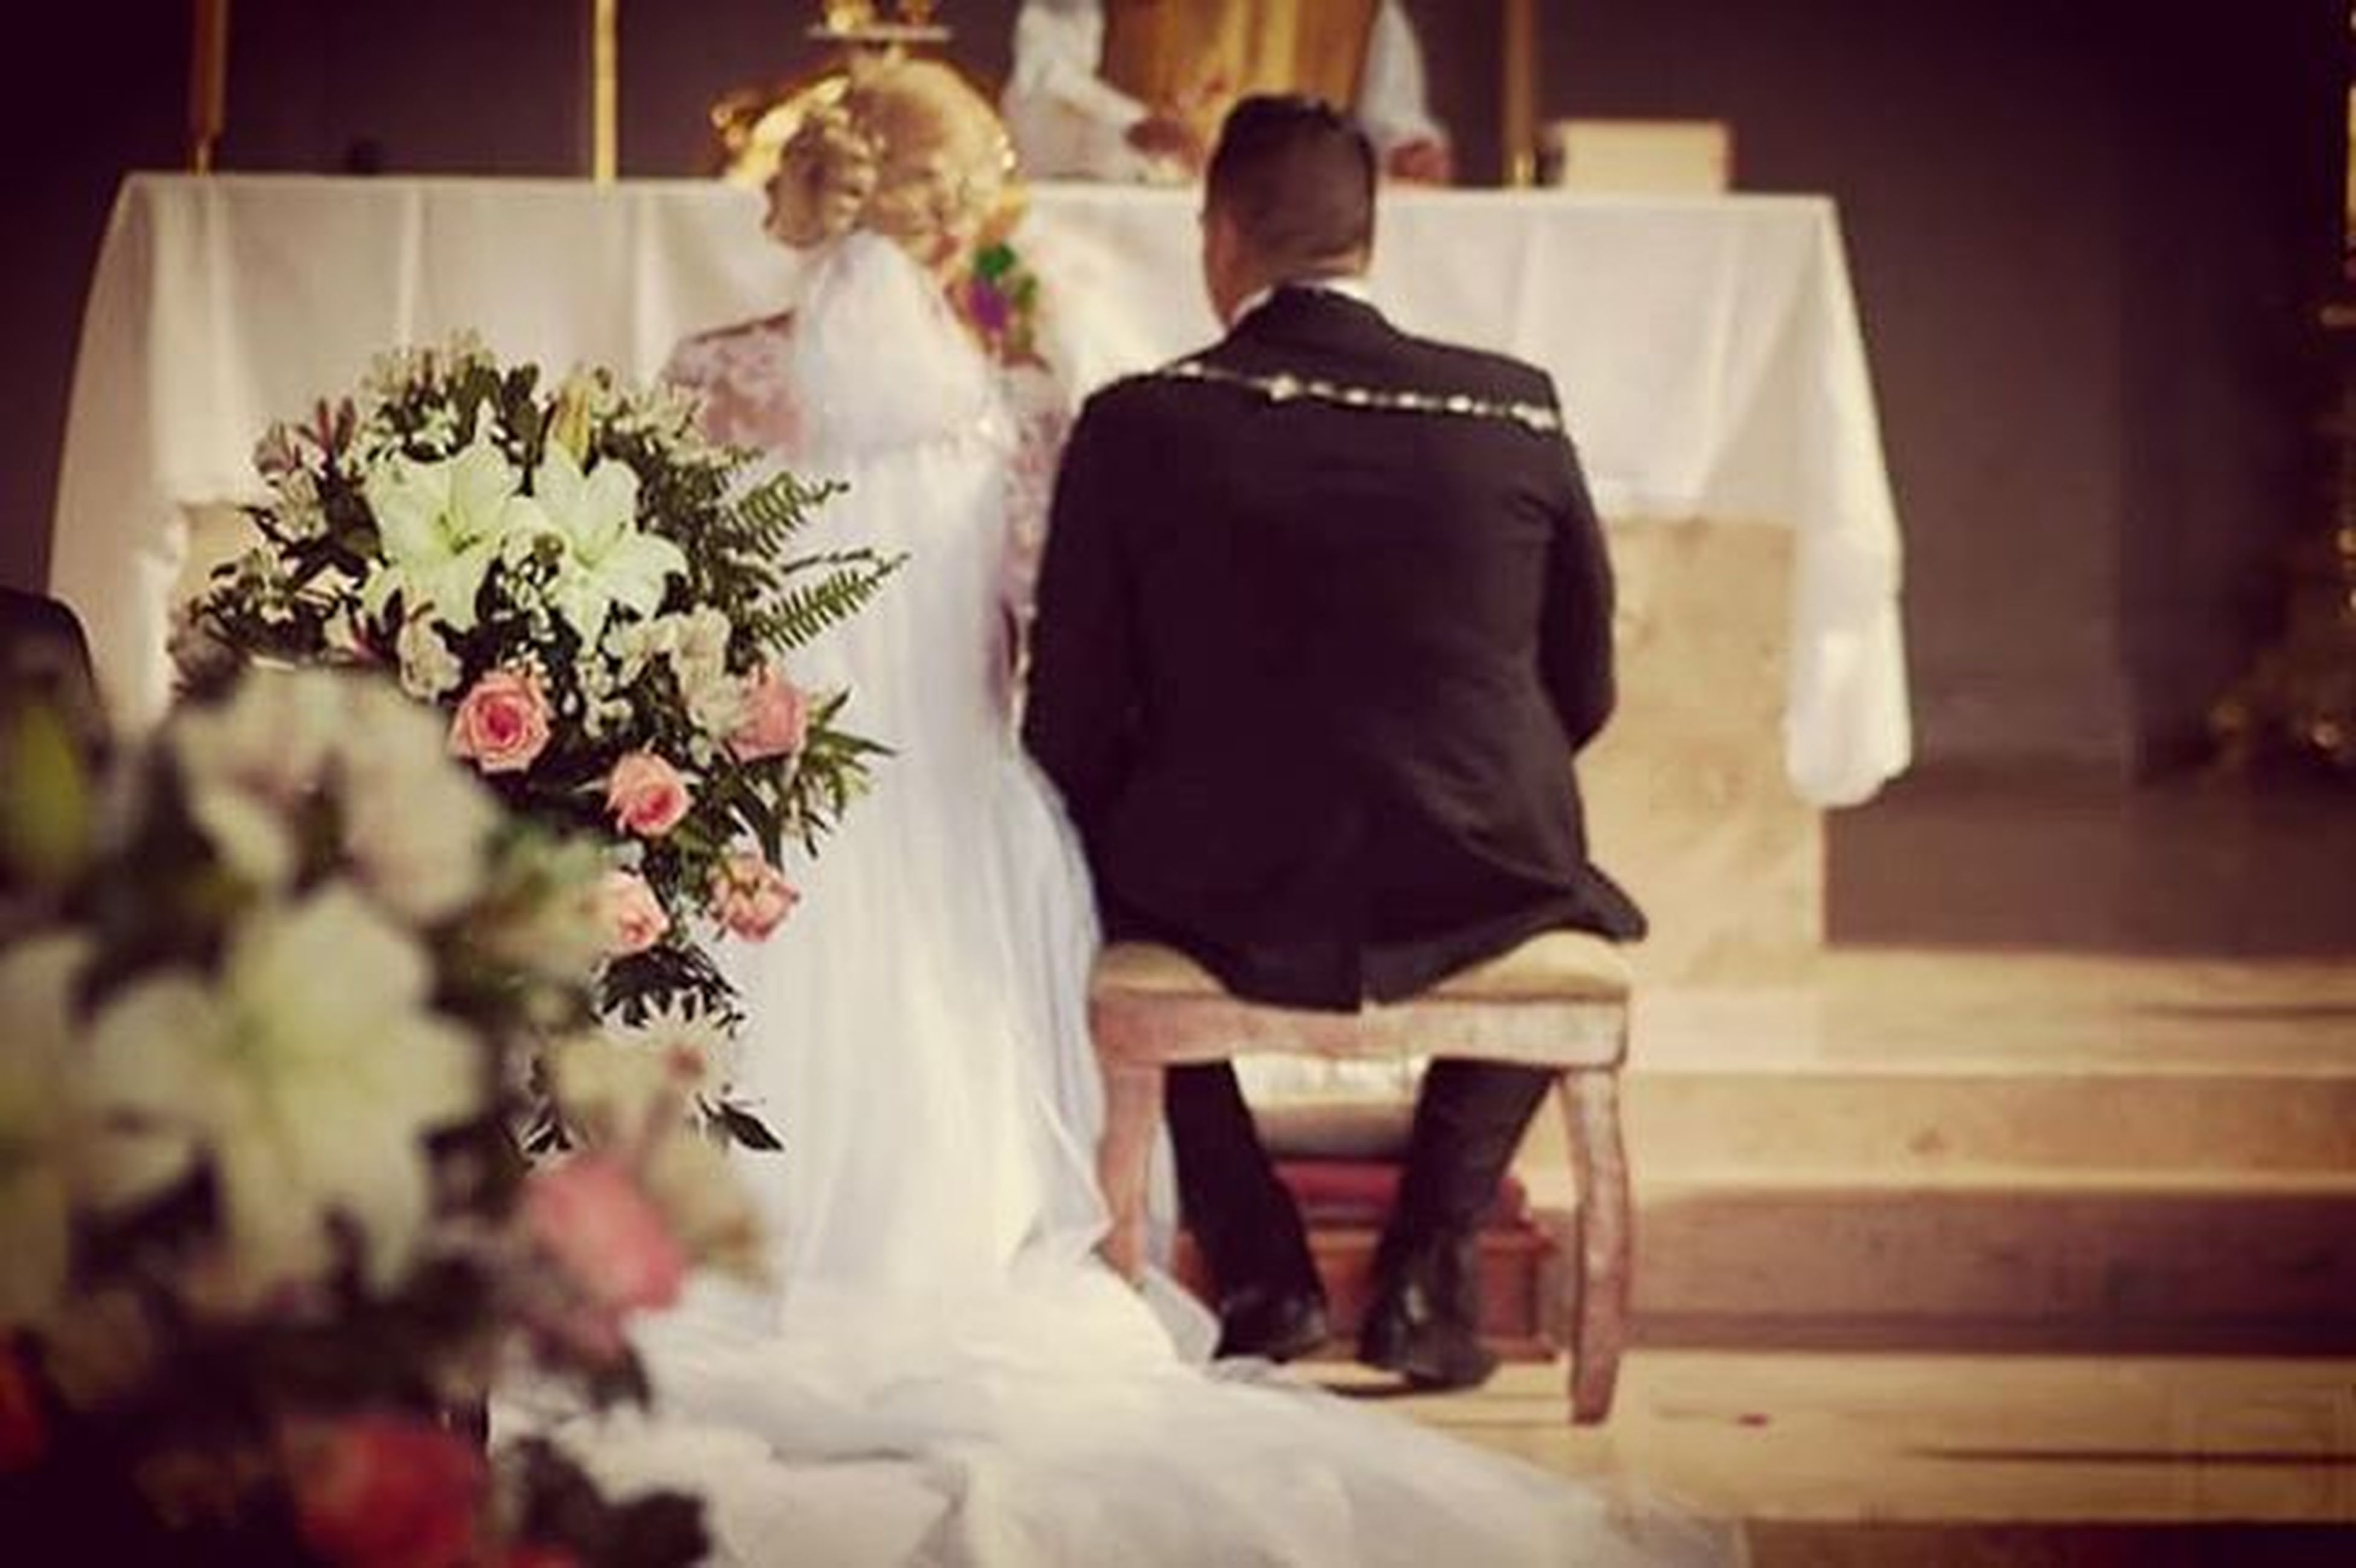 indoors, flower, rear view, person, lifestyles, standing, casual clothing, home interior, sitting, freshness, focus on foreground, table, men, full length, leisure activity, religion, celebration, bouquet